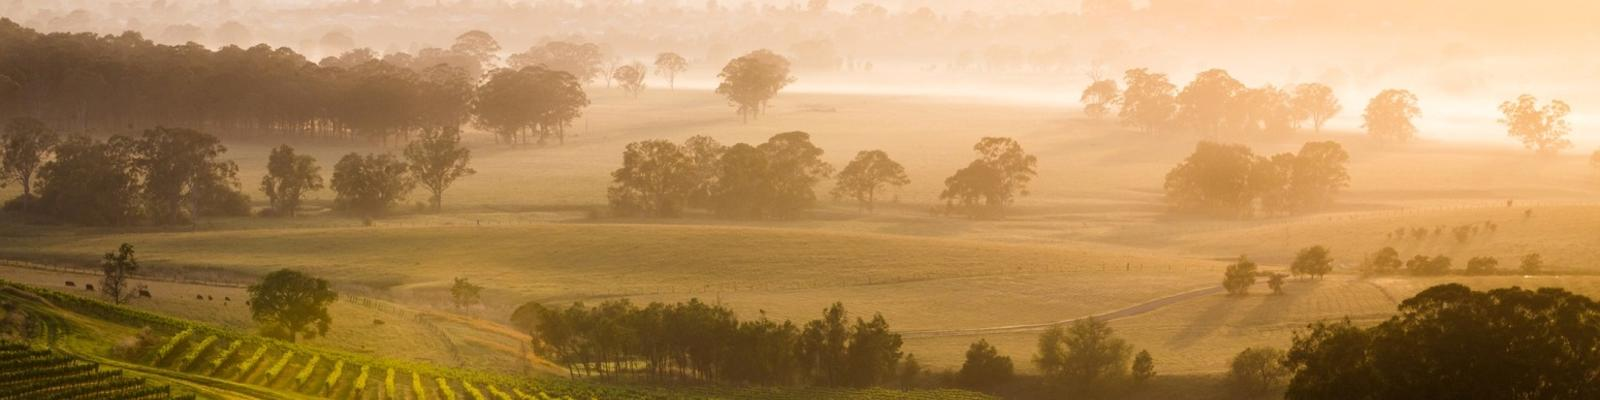 New South Wales wine country. Photo: Getty Images.